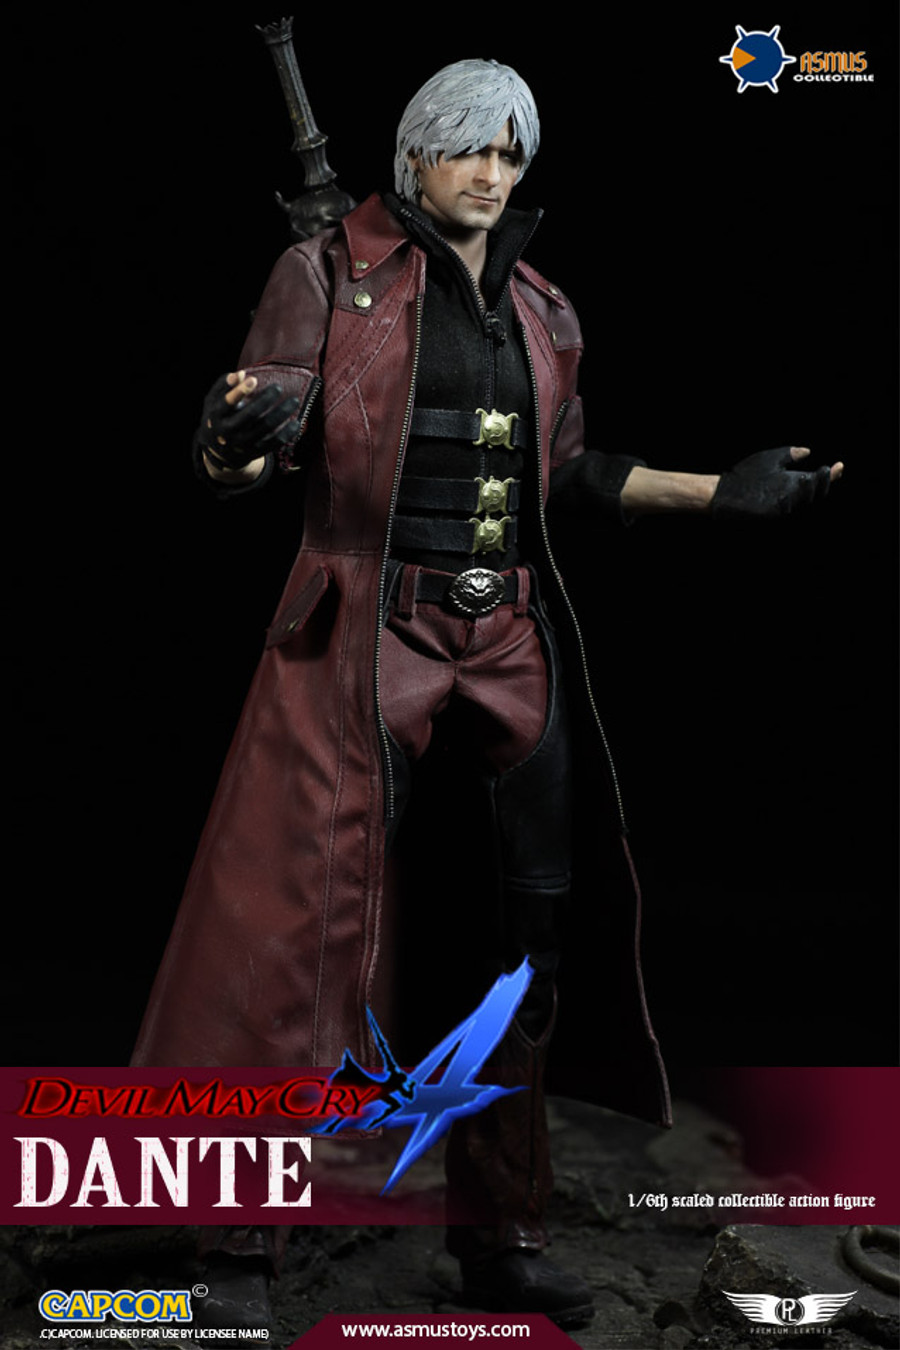 Asmus Toys - The Devil May Cry Series: The Dante